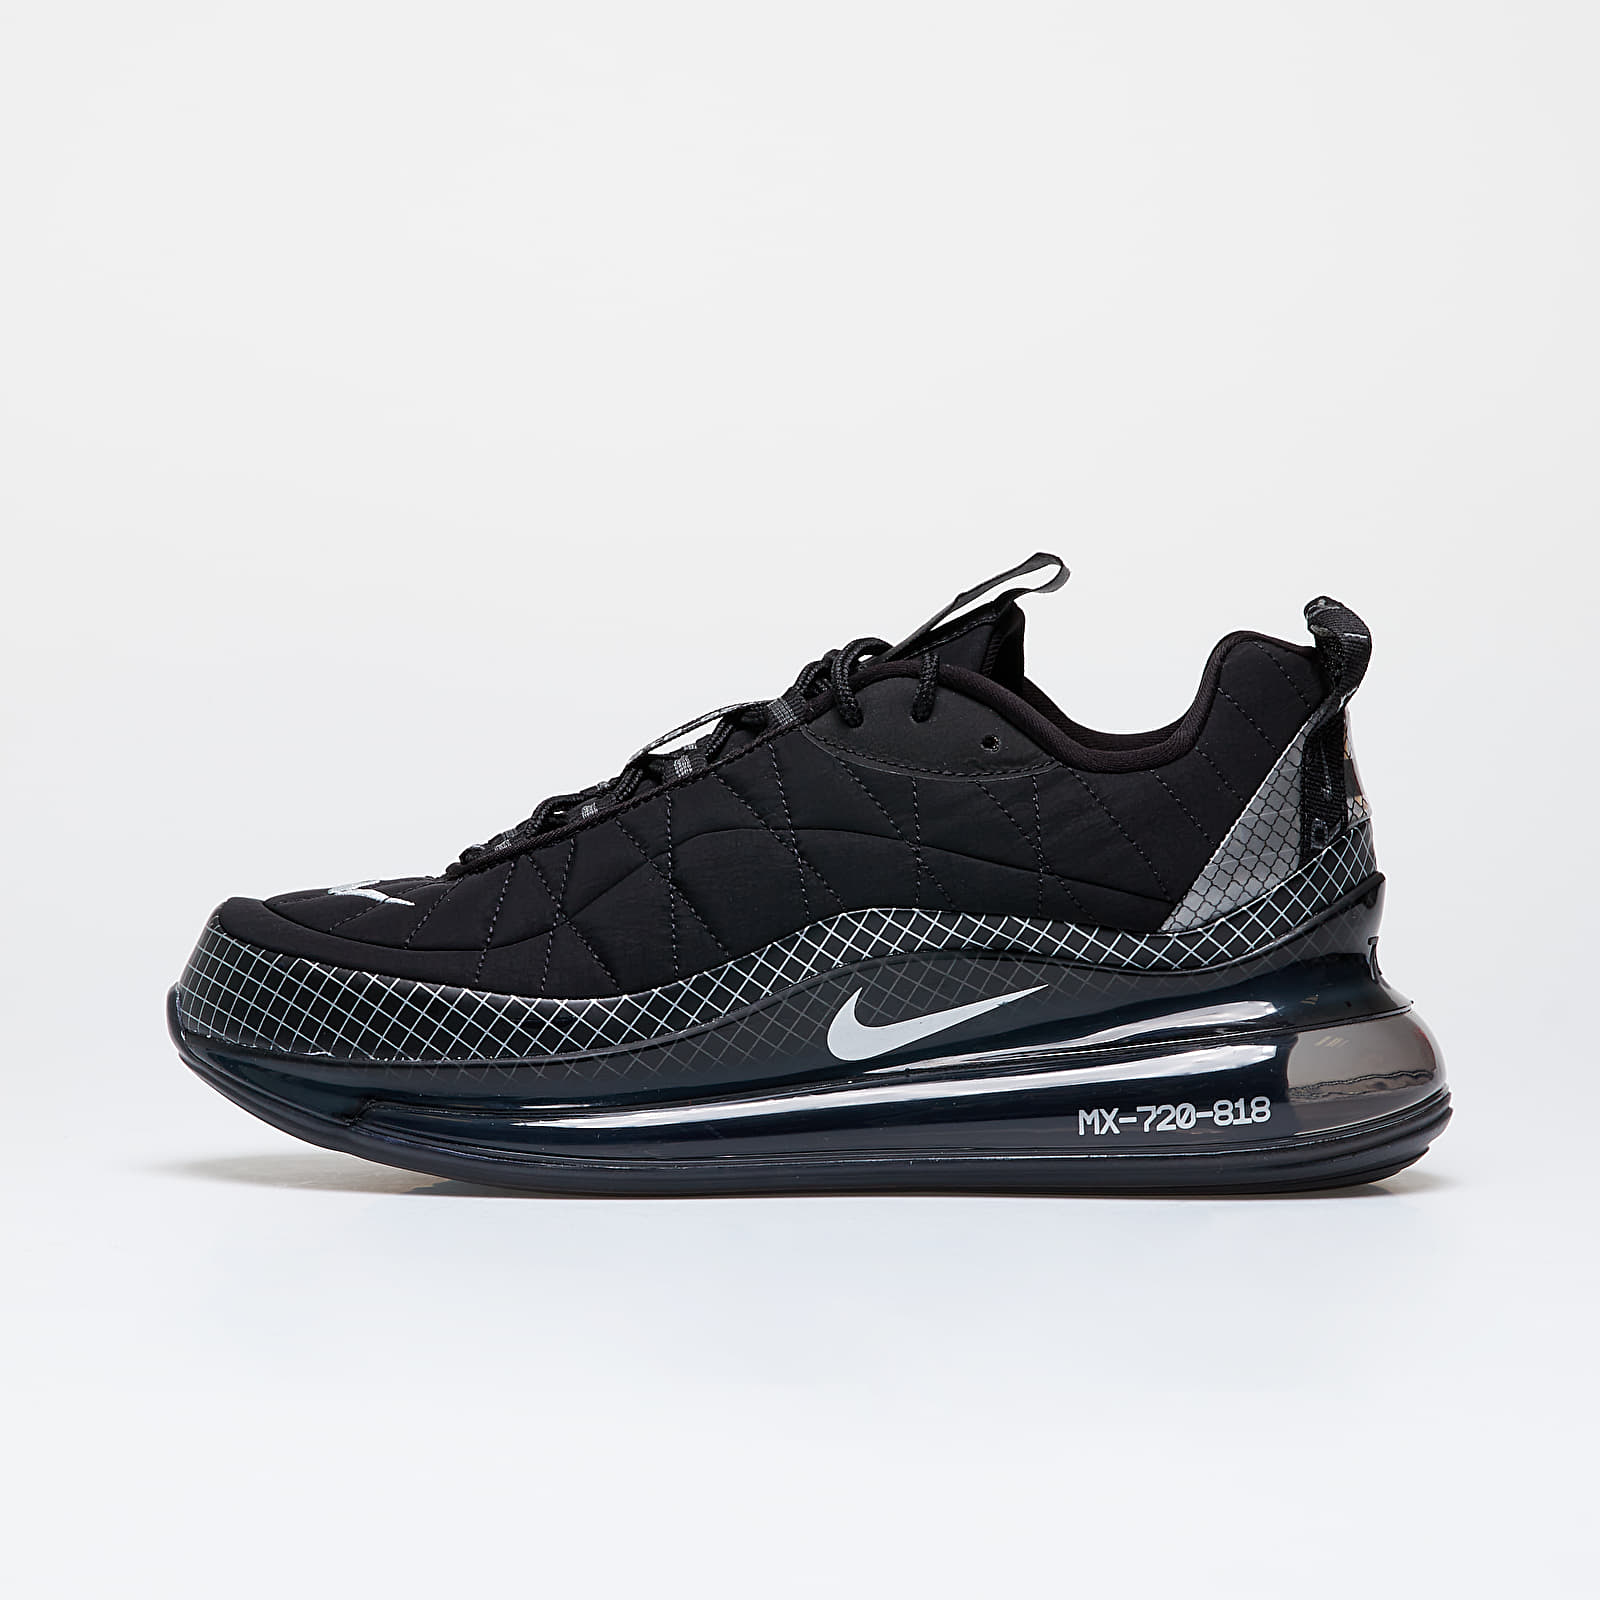 Férfi cipők Nike Mx-720-818 Black/ Metallic Silver-Black-Anthracite